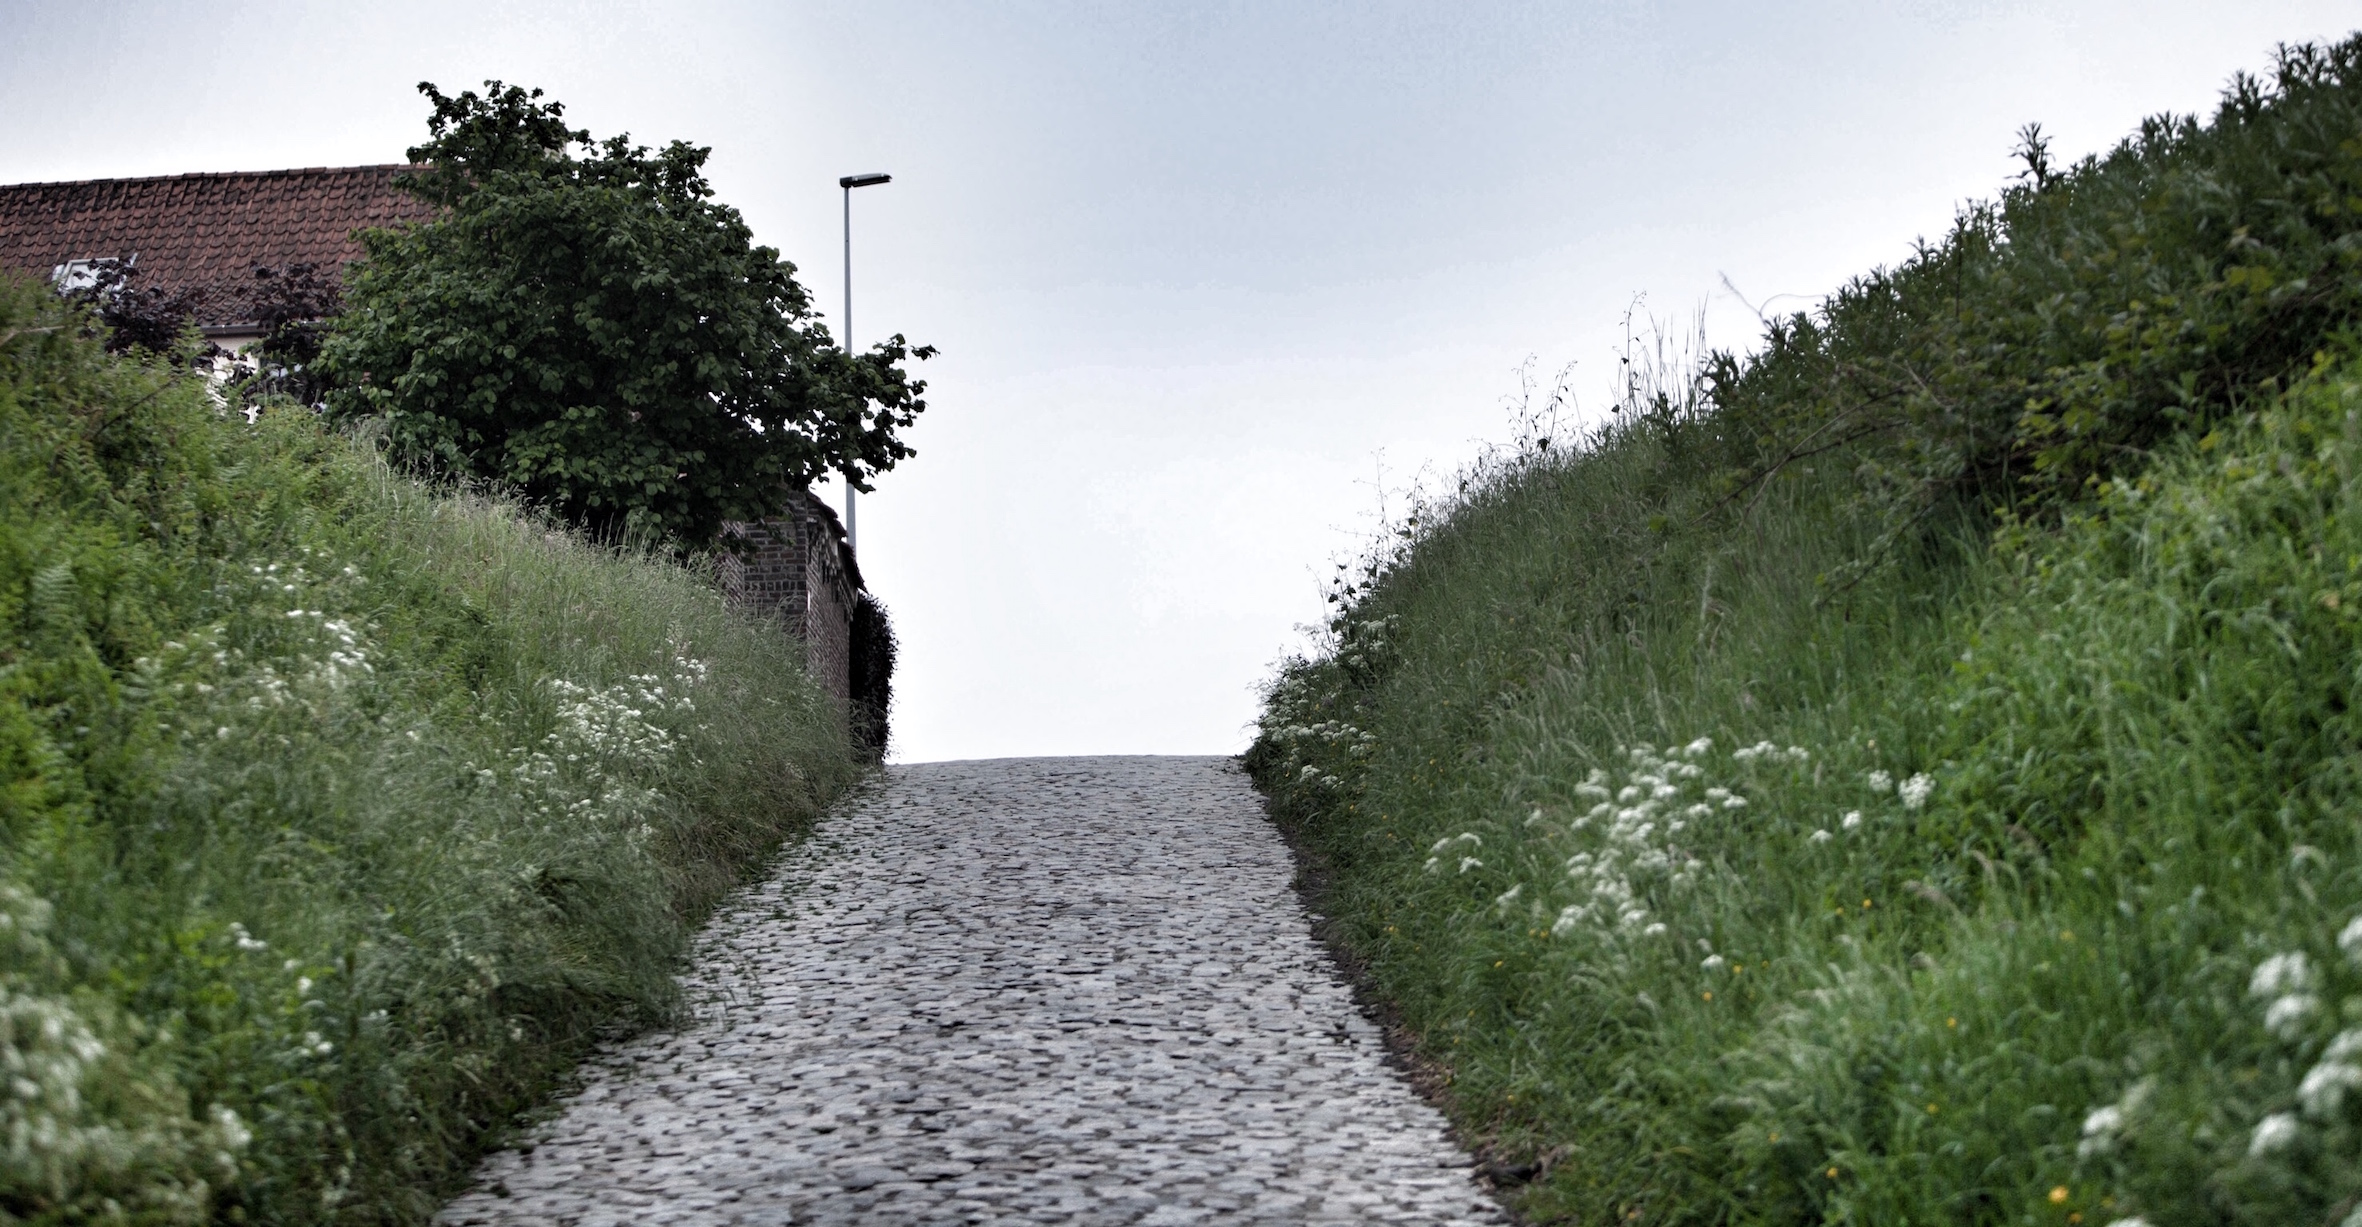 The Koppenberg. Make sure this one's on your bucket list.